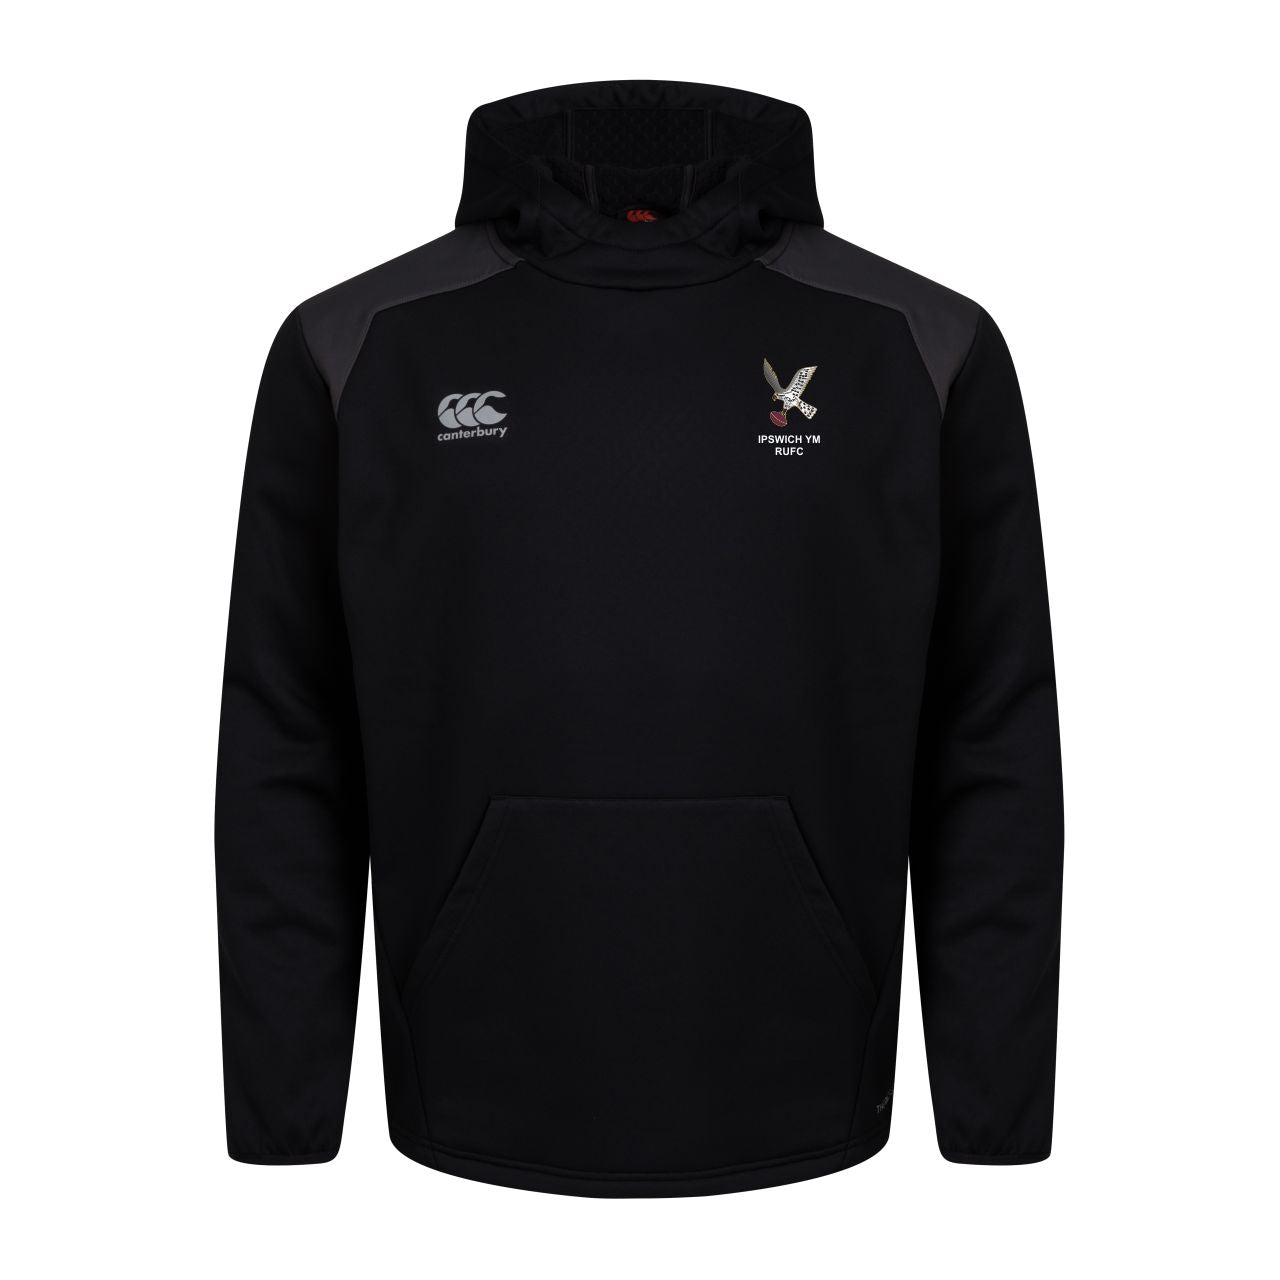 IPSWICH YM RUFC CCC PRO II THERMOREG OVER THE HEAD HOODY